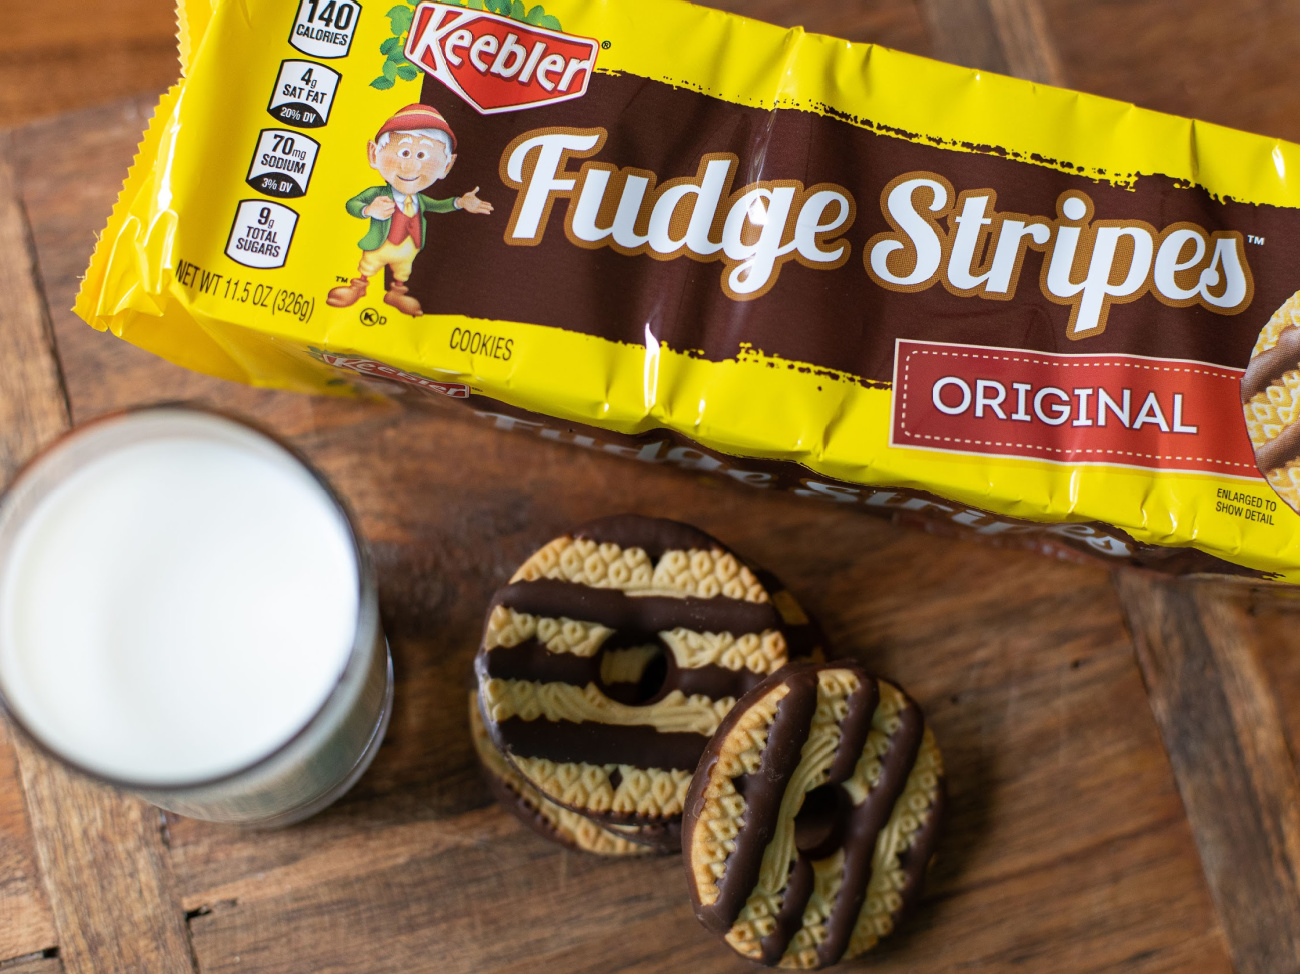 Keebler Cookies As Low As $1.64 At Publix on I Heart Publix 1